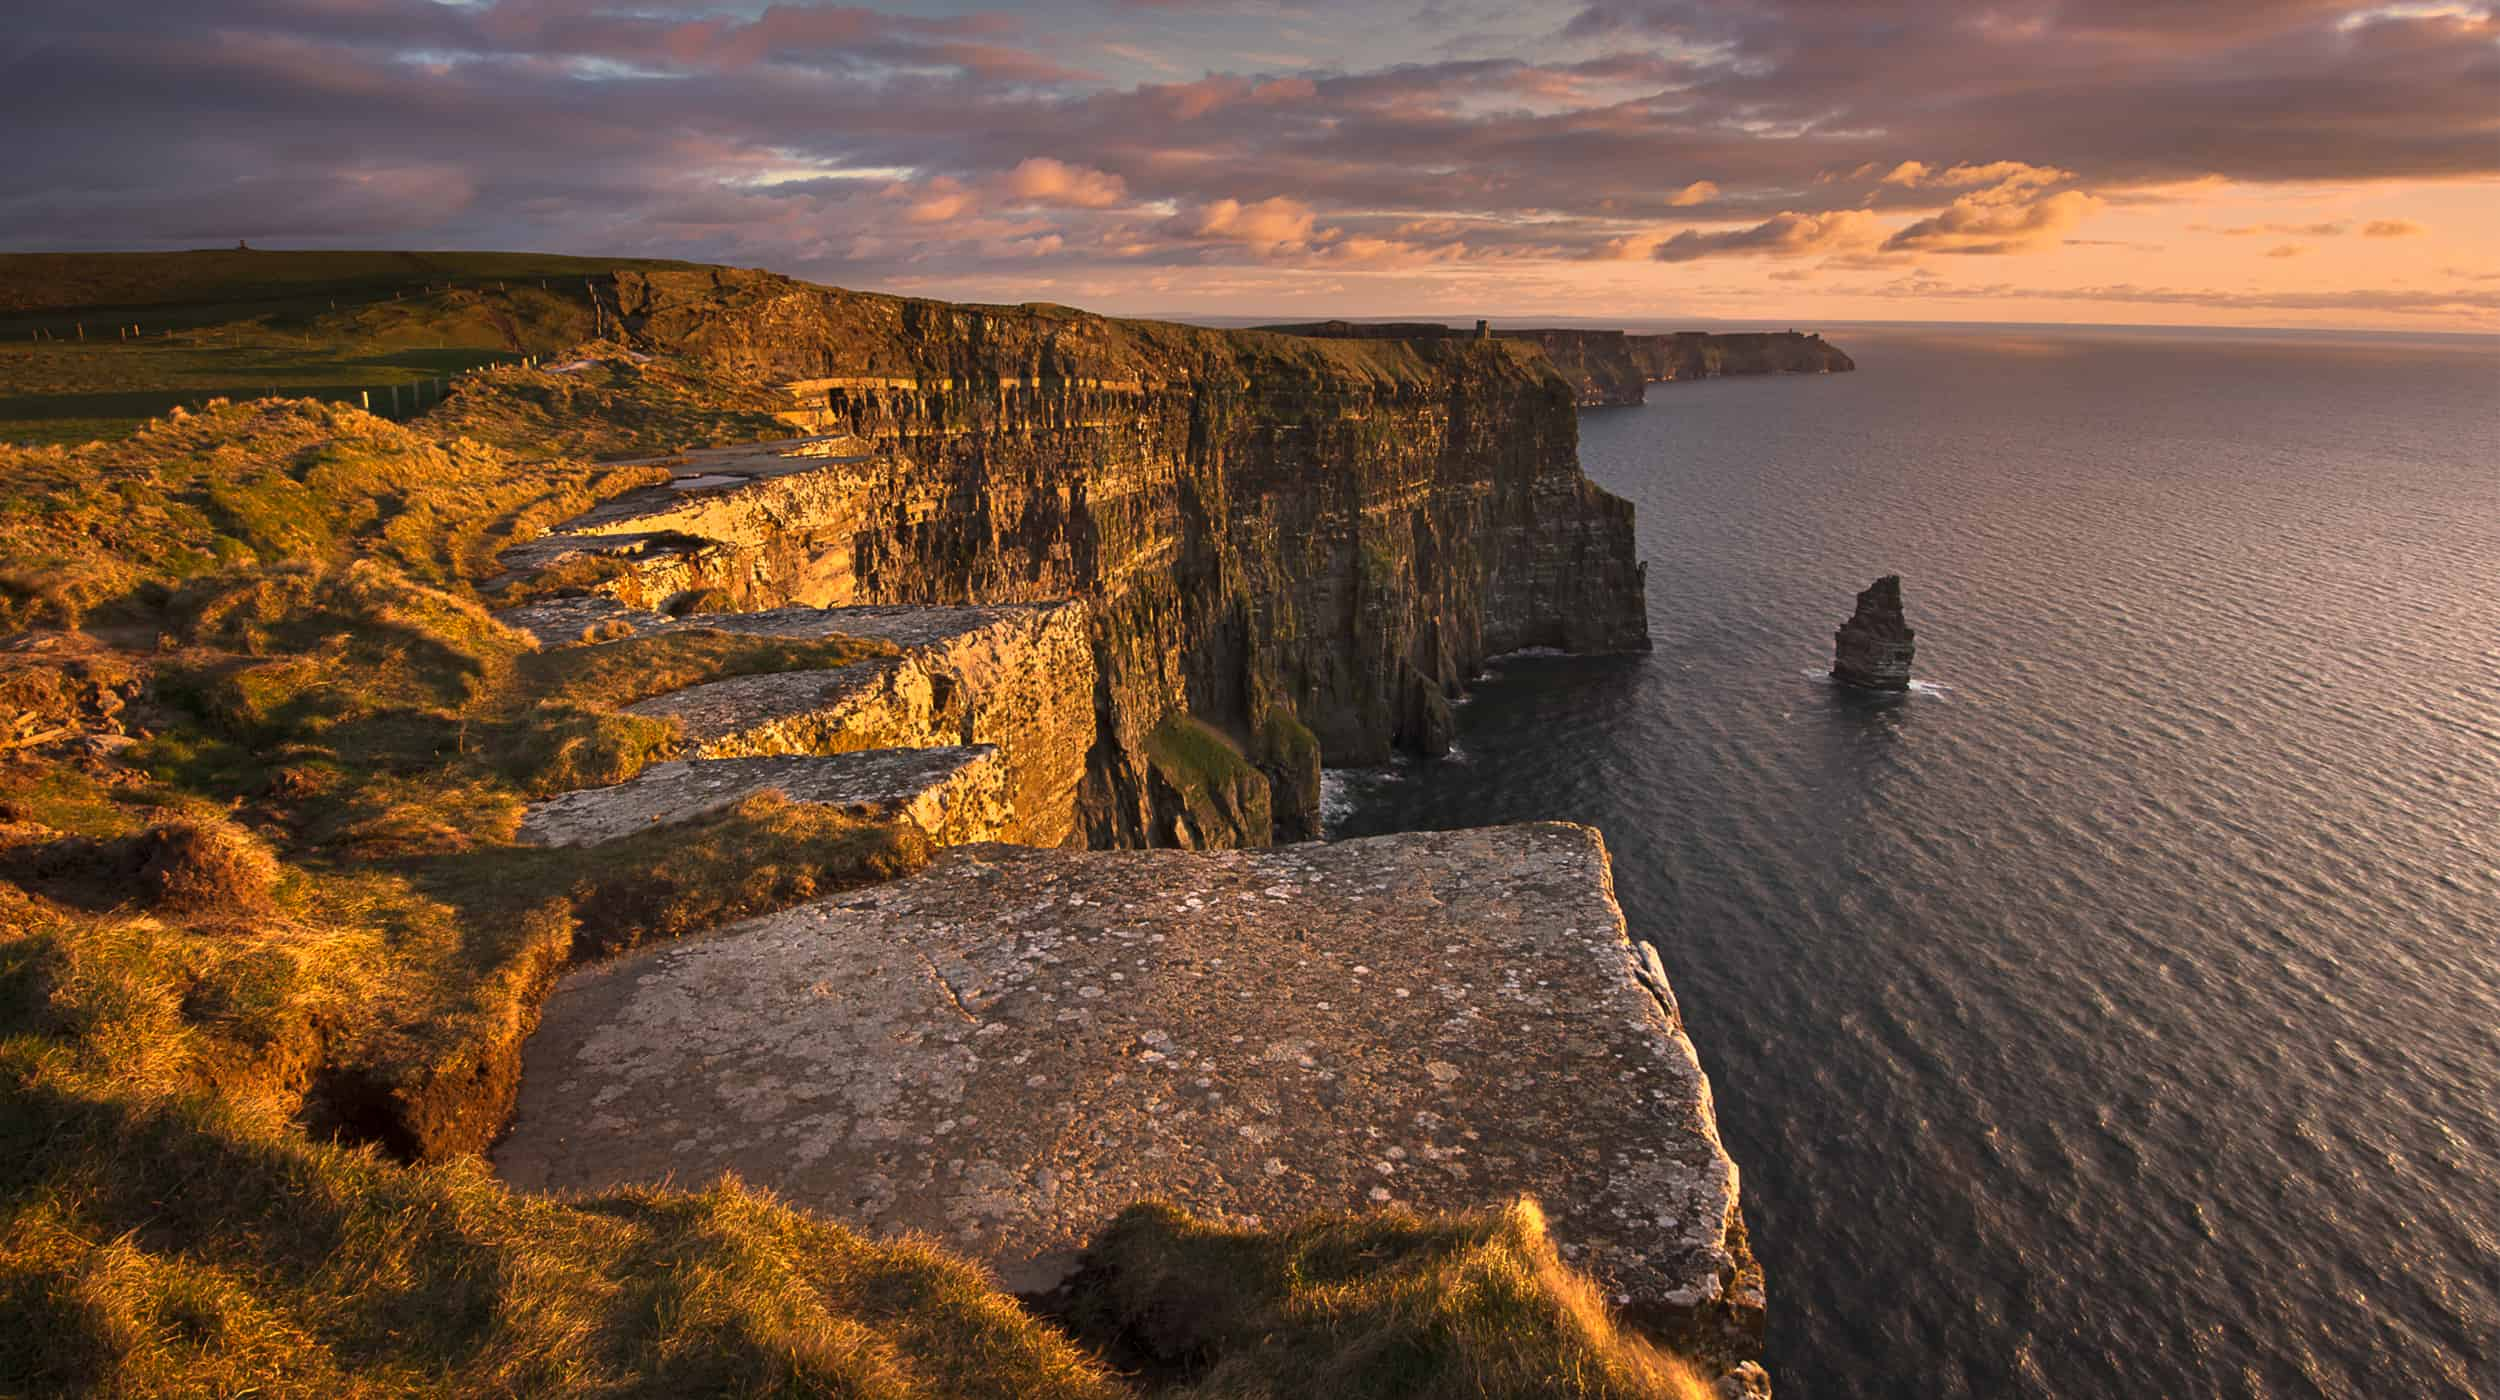 The Best Yoga Retreats in Europe - The Cliffs Of Moher Retreat